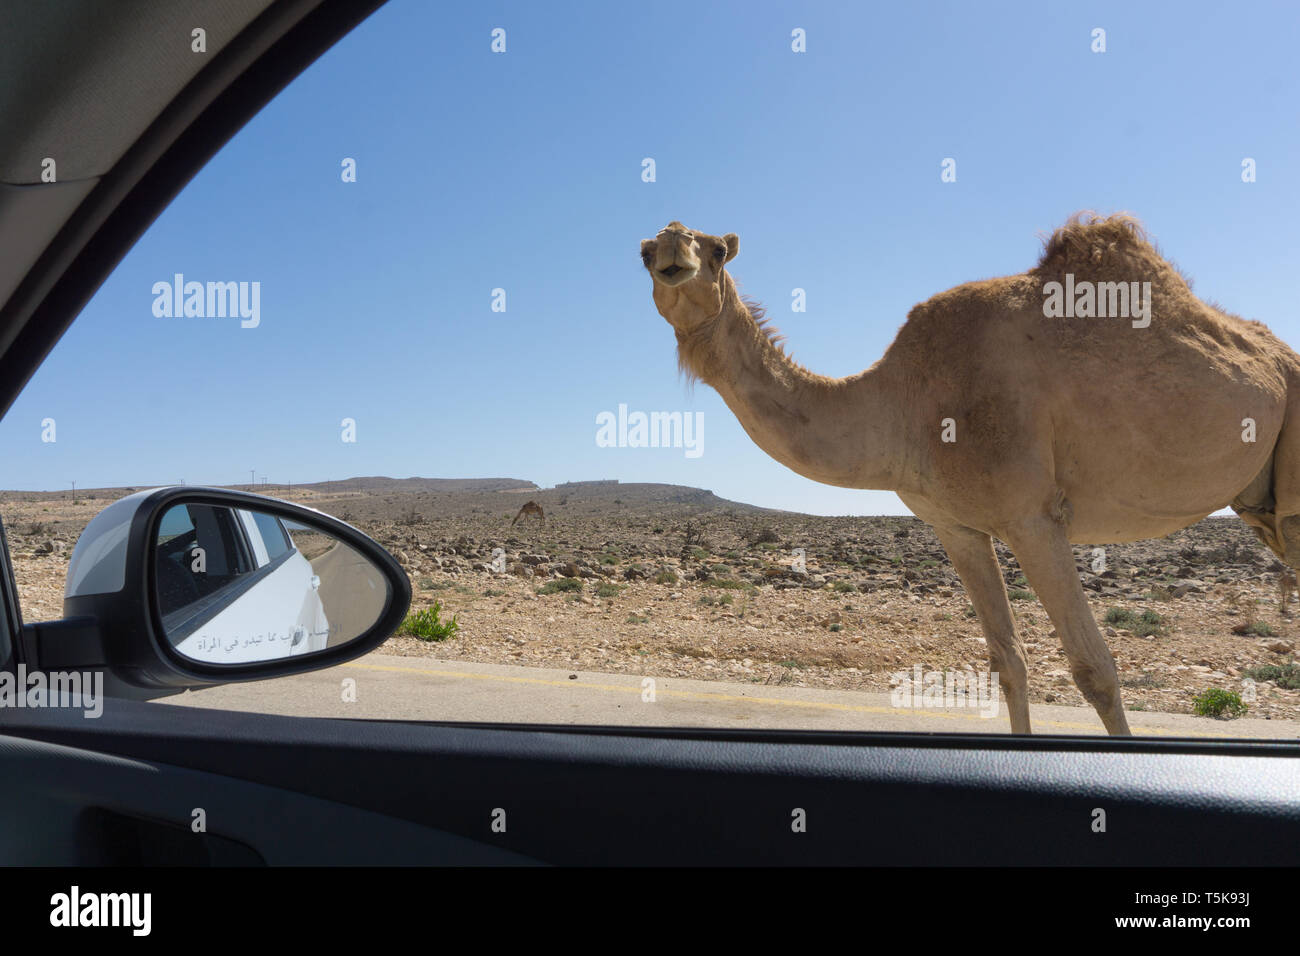 Camel on road, Salalah, Dhorfar, Oman Stock Photo